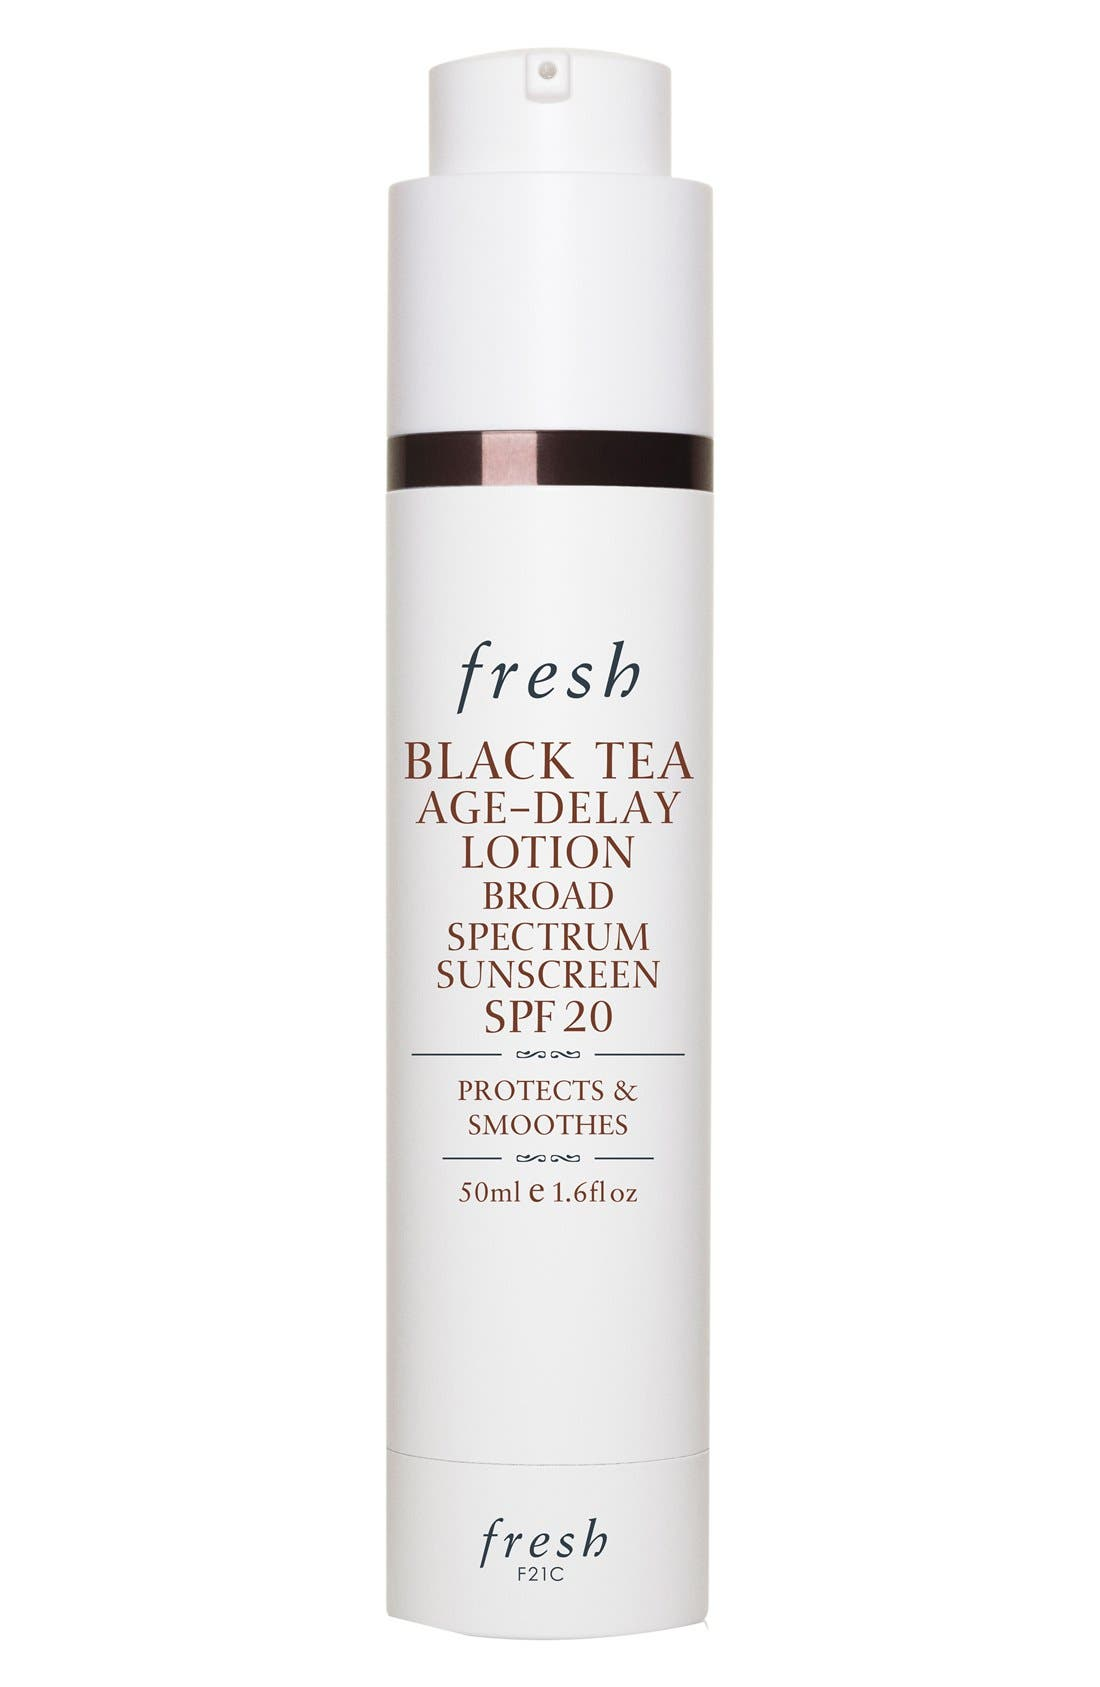 Fresh® Black Tea Age-Delay Lotion Broad Spectrum Sunscreen SPF 20